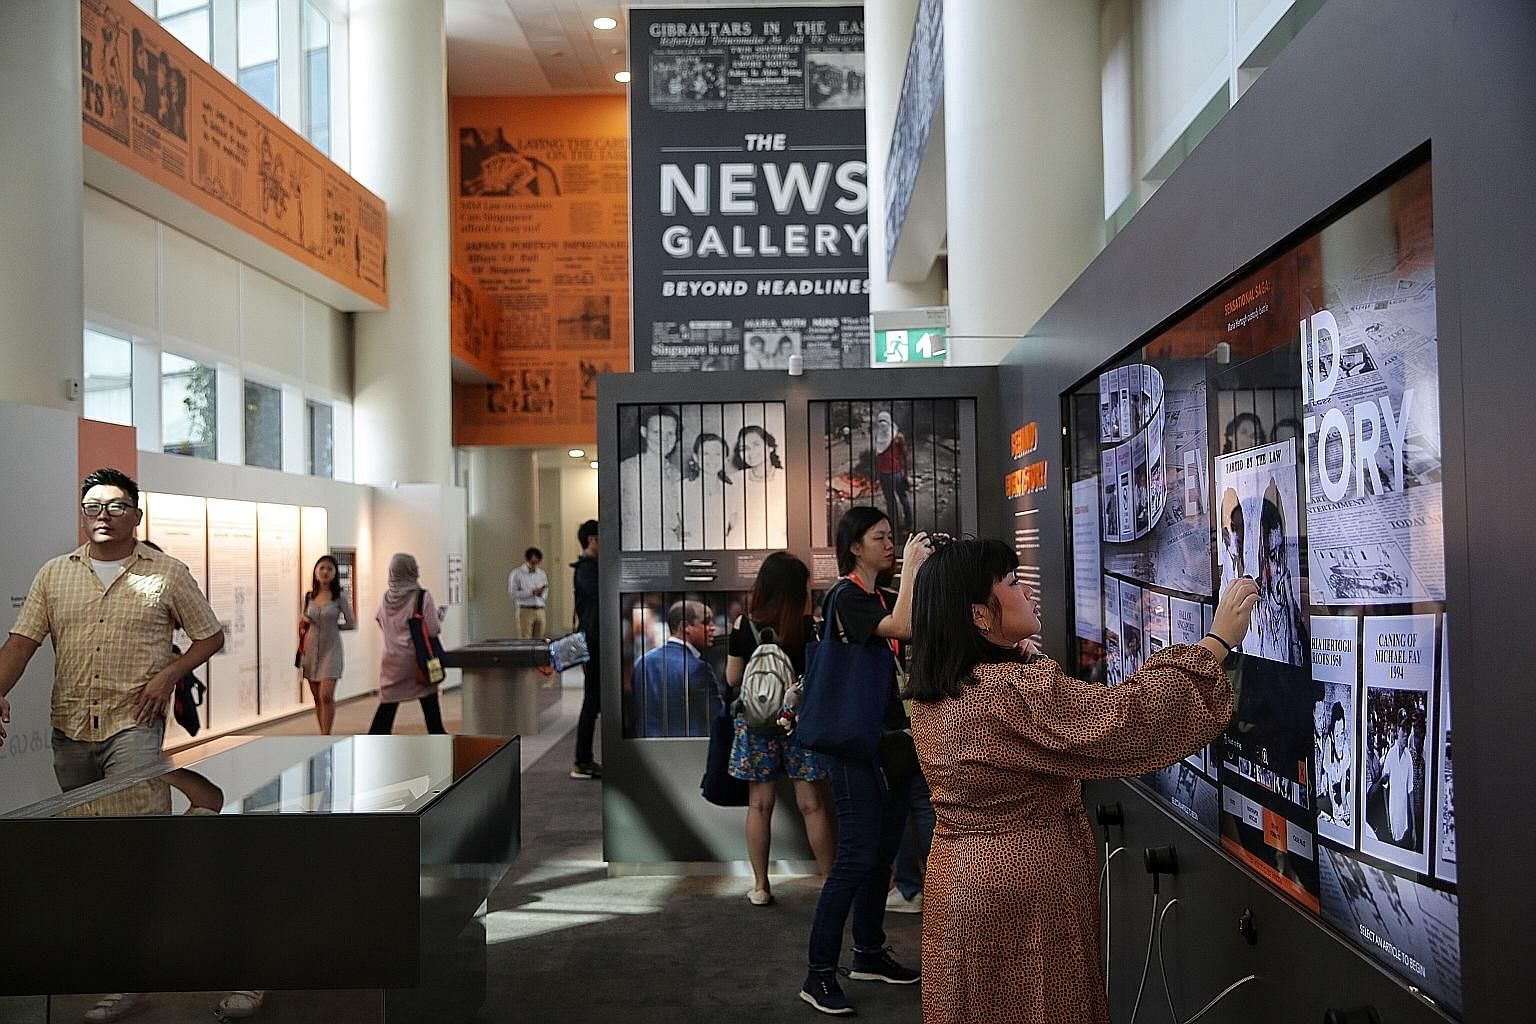 Invited guests exploring the National Library's new permanent exhibition, called The News Gallery: Beyond Headlines, yesterday. It includes interactive screens showing how different newspapers covered events in the nation's past, such as the Maria He